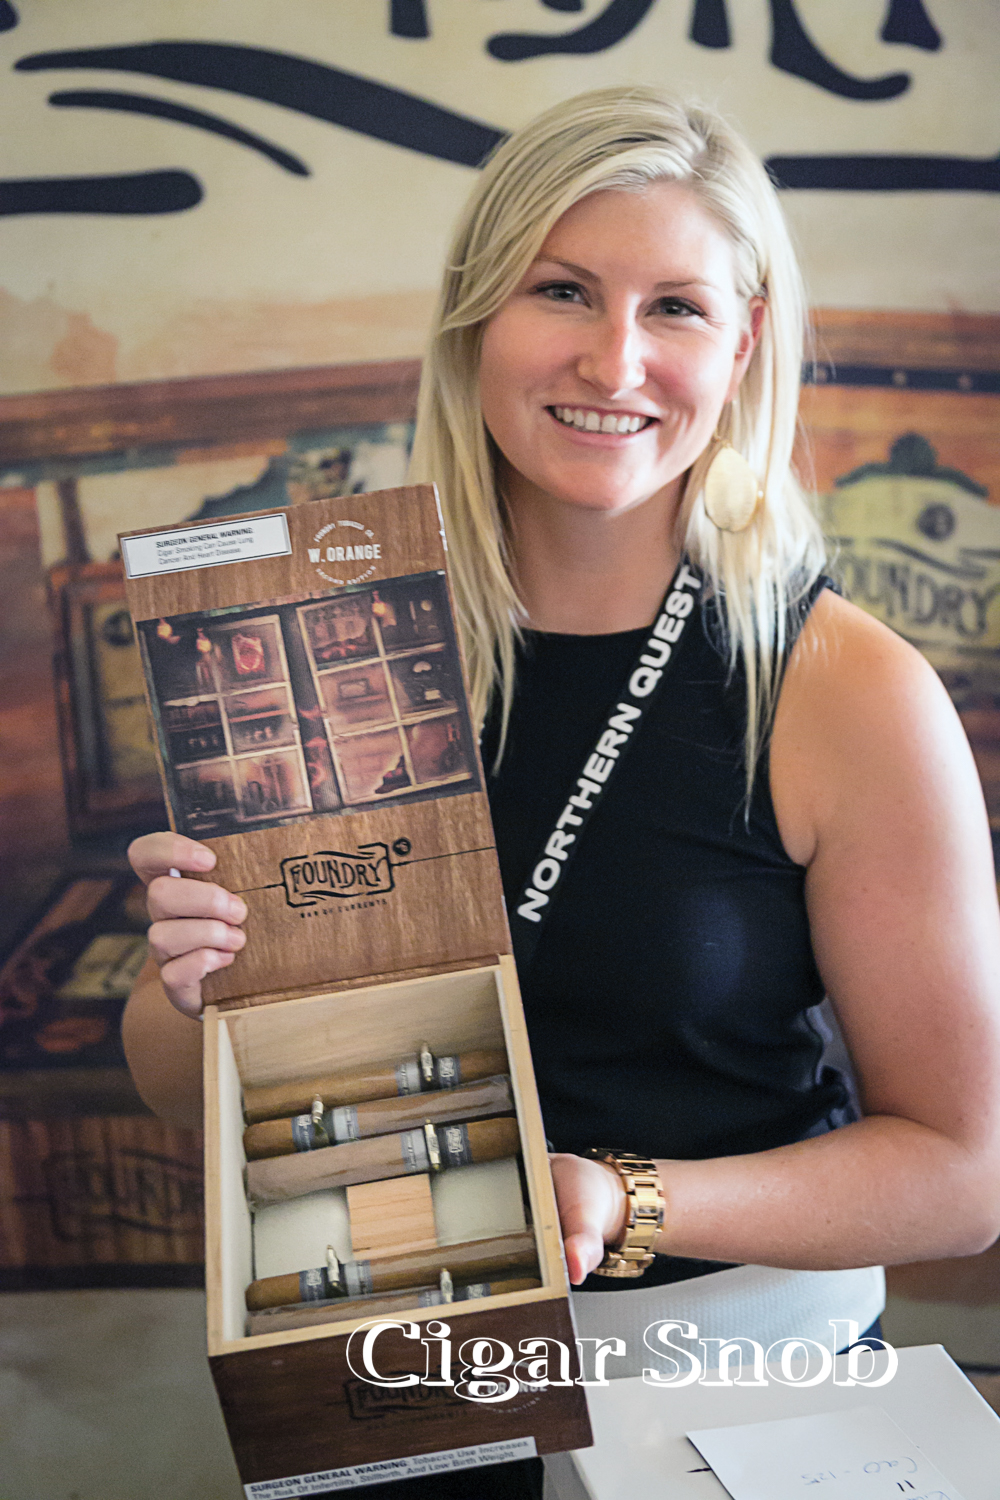 Lana Fraser of General Cigars